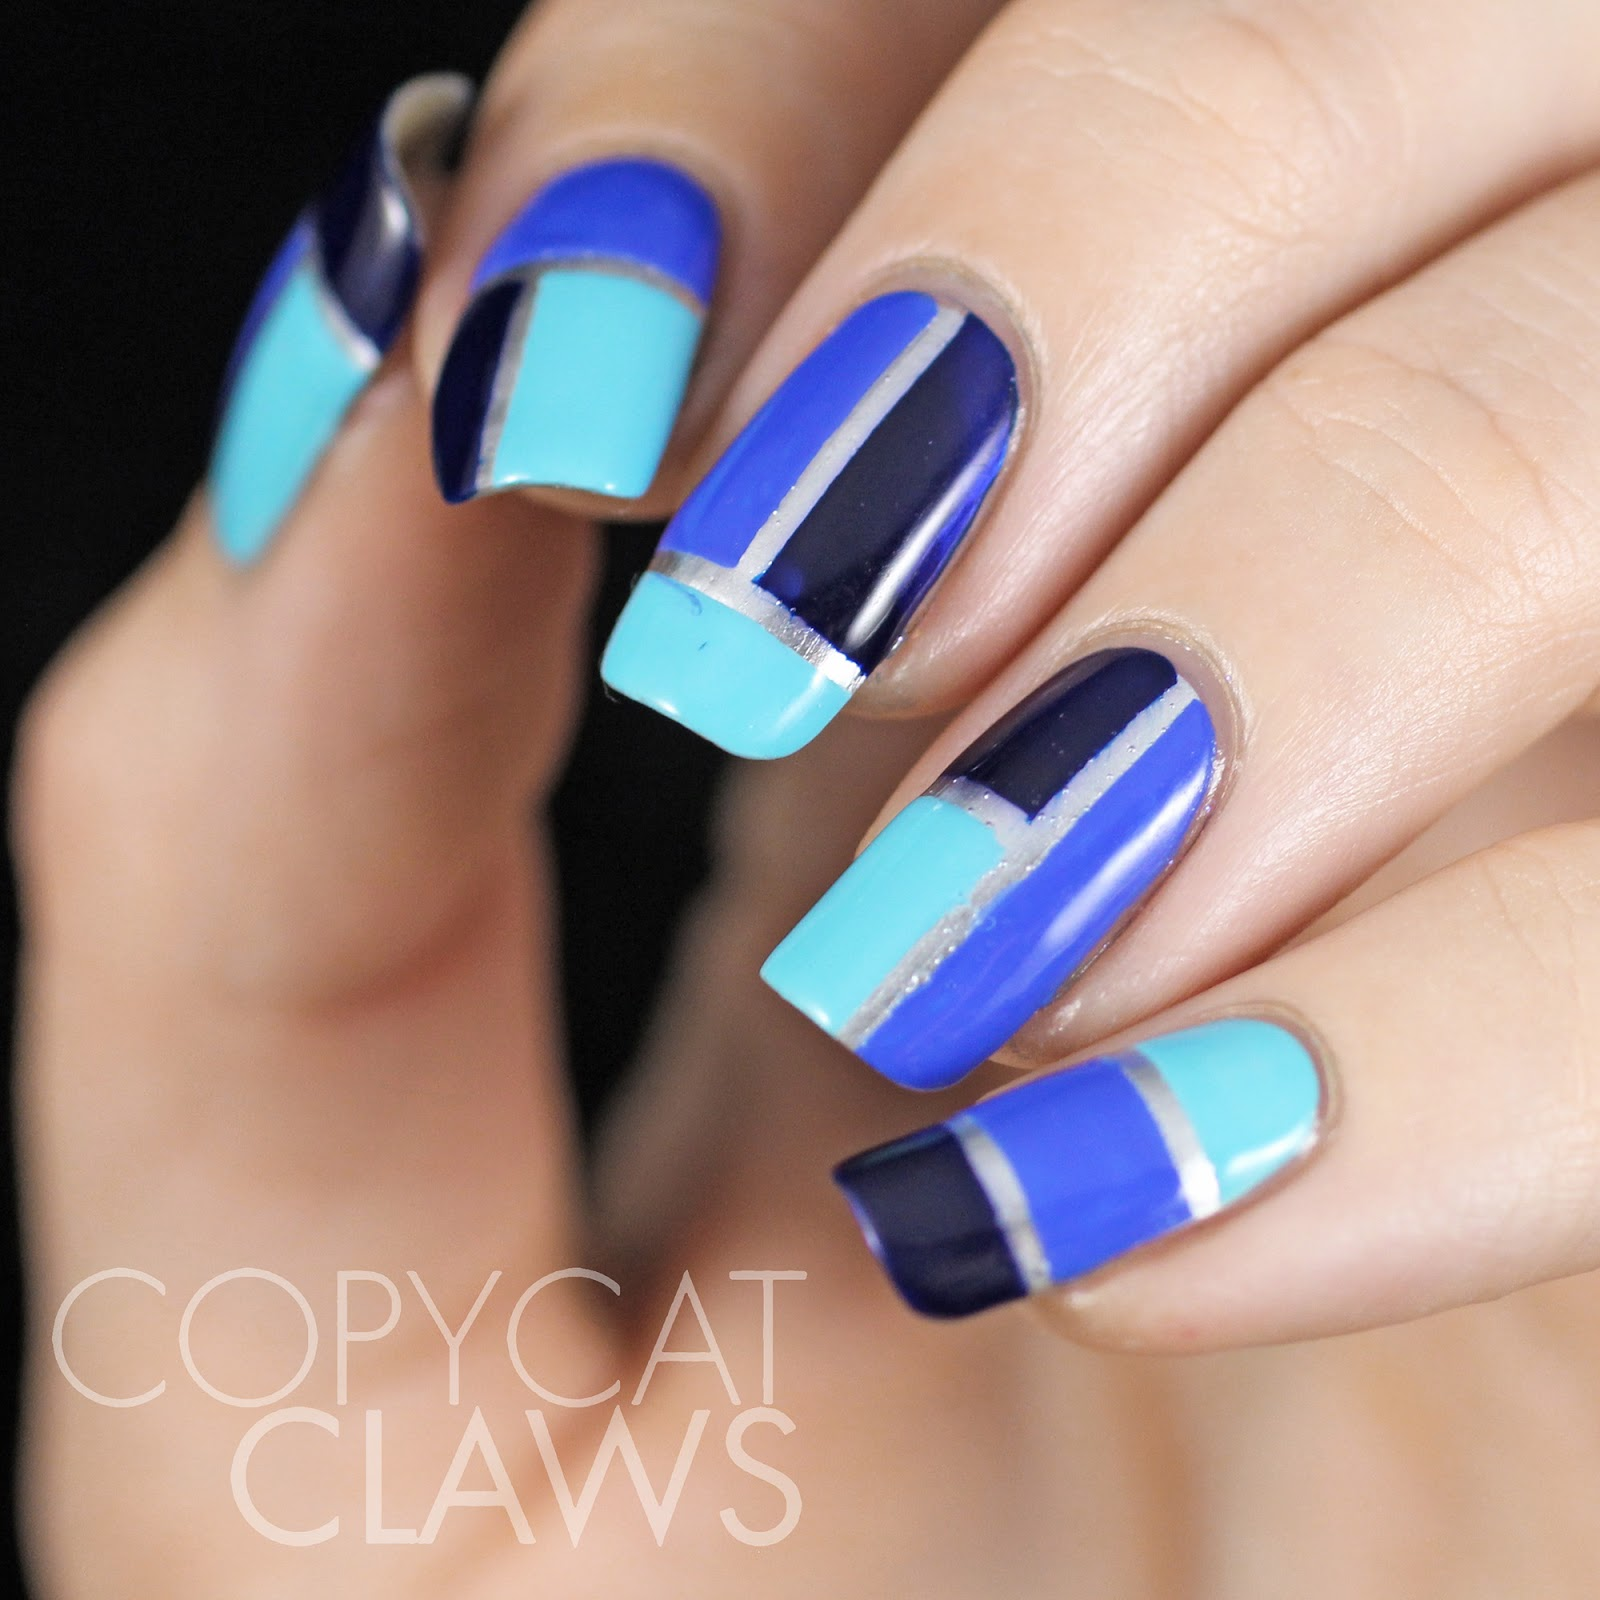 Copycat claws blue color block nail art the blues i used are china glaze capacity to see beyond turquoise blue and i sea the point medium blue and cult nails time traveller dark blue prinsesfo Images